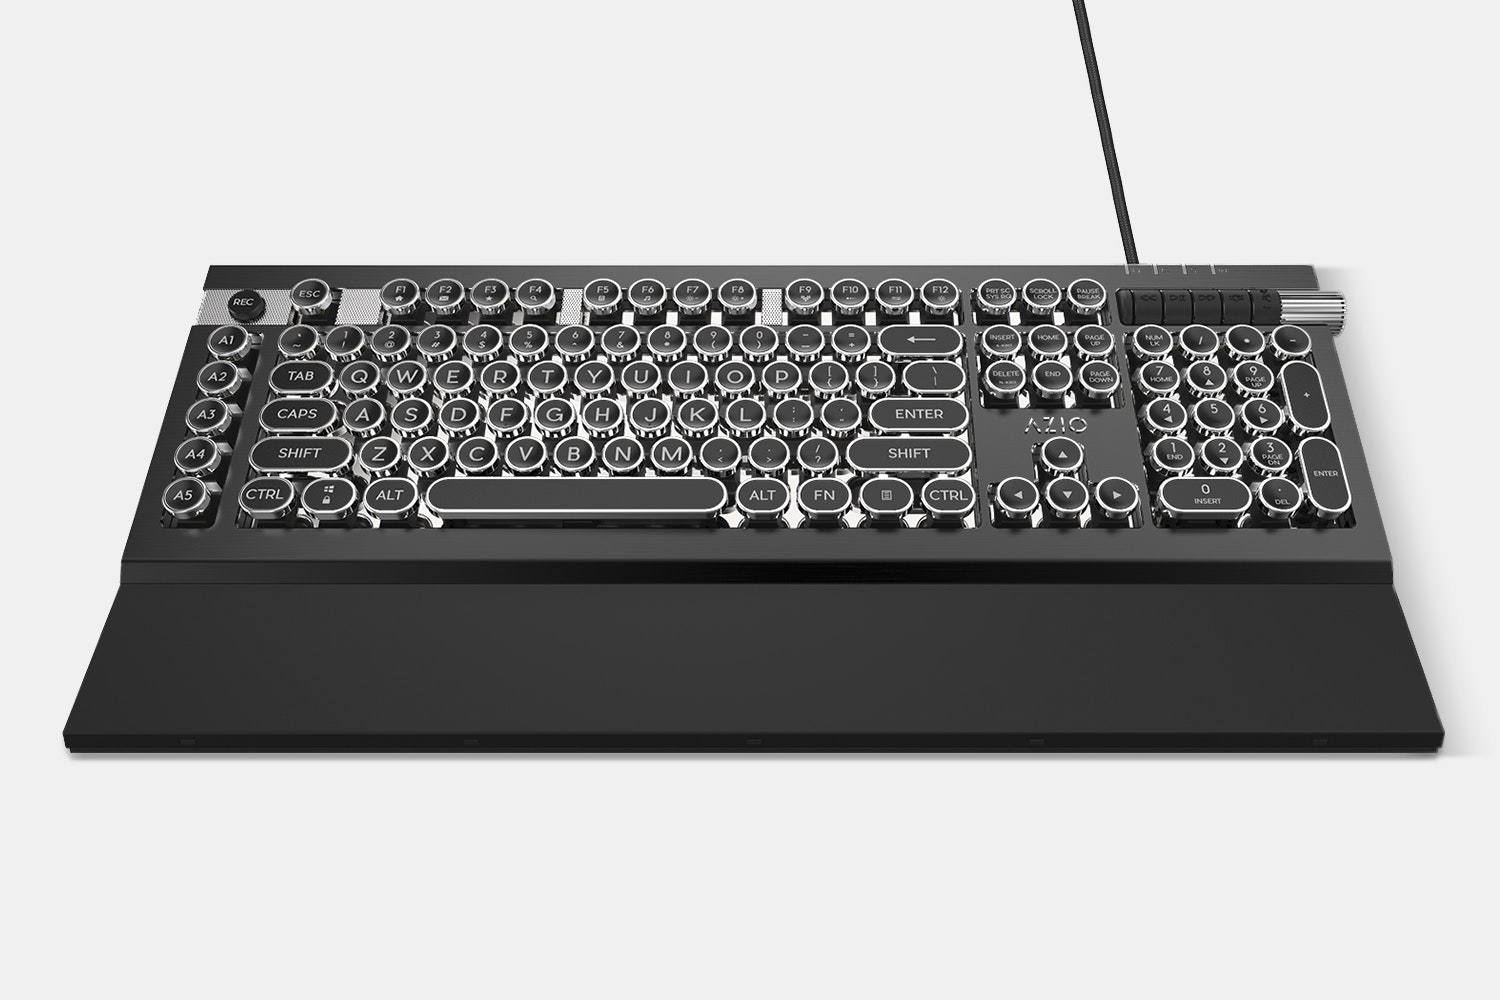 Azio Armato Gaming Mechanical Keyboards